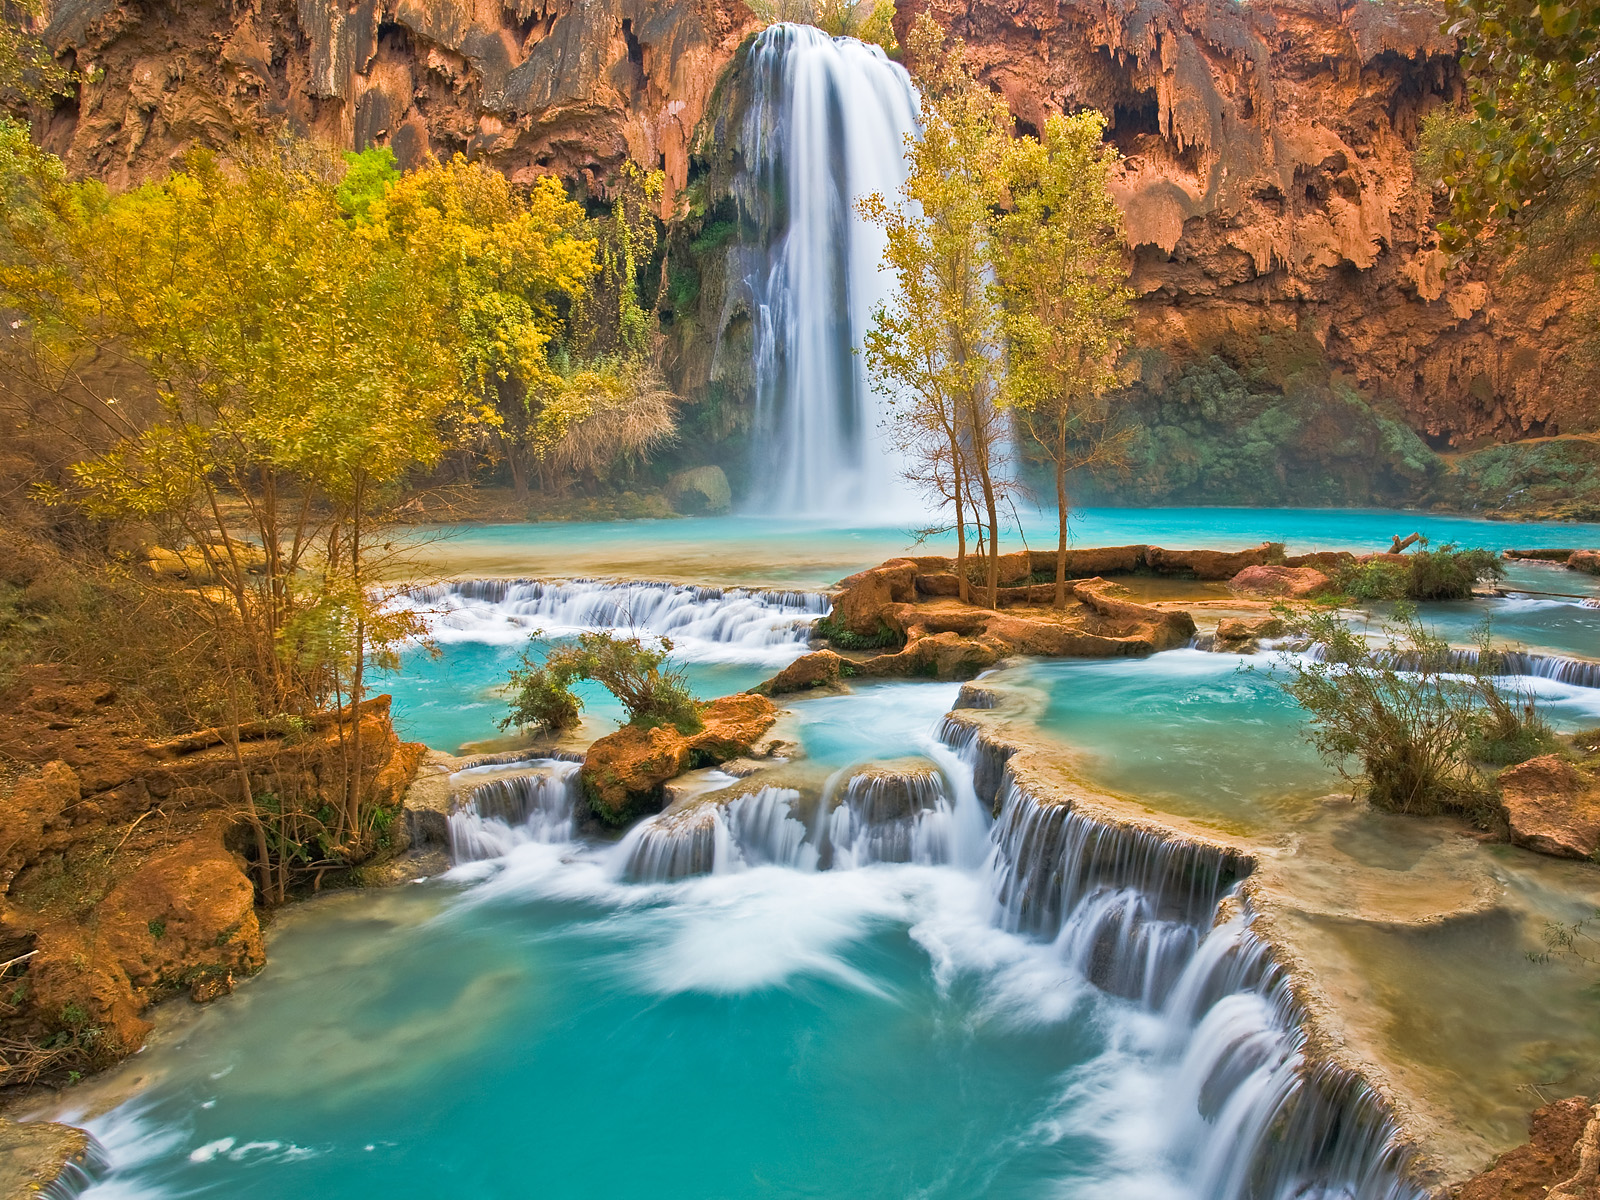 Havasu Falls Arizona Wallpapers Full Desktop Backgrounds 1600x1200